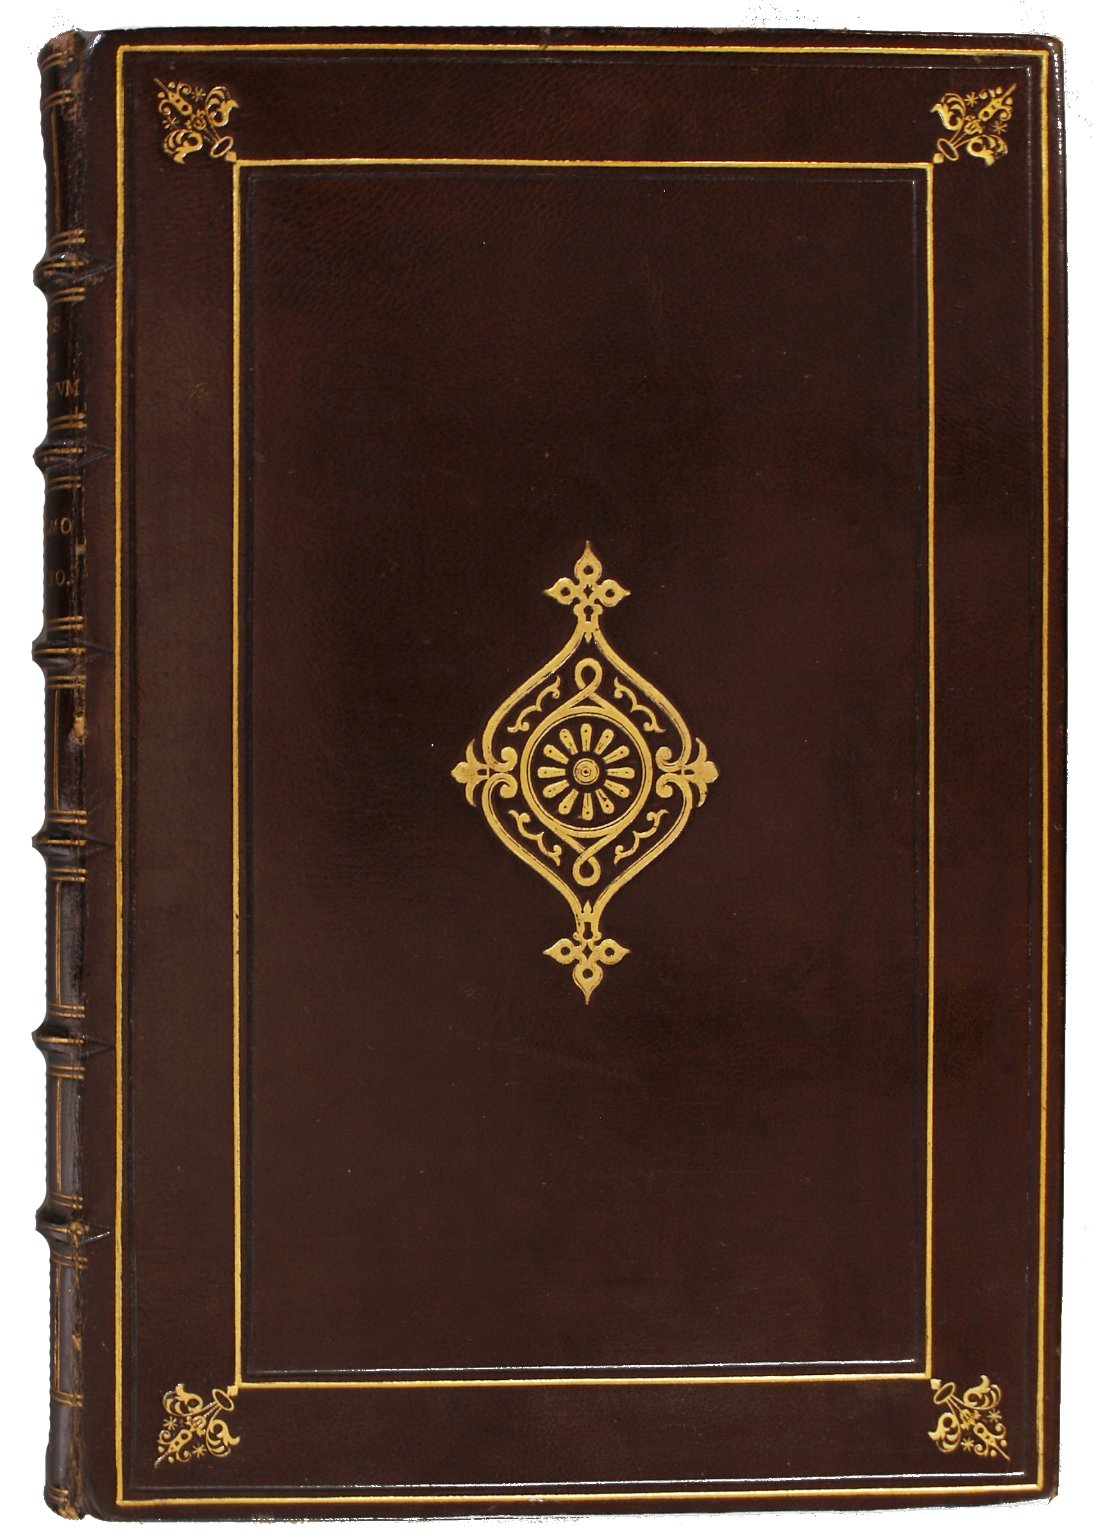 Front cover, STC 4496.2 copy 3.